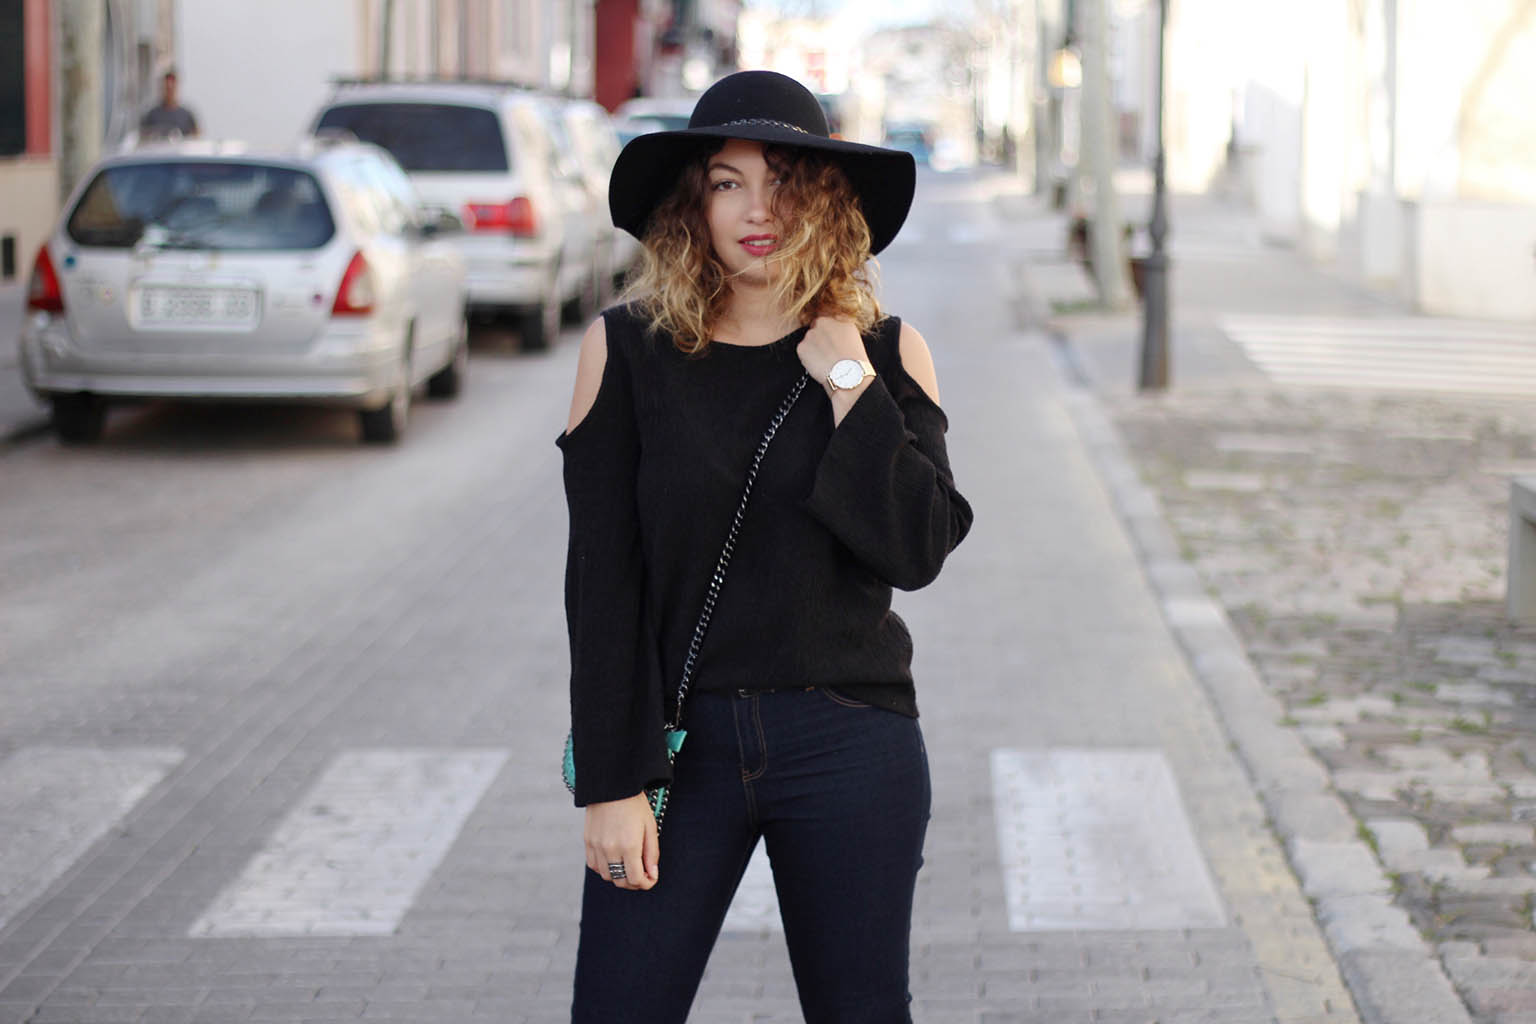 Blog-fashion-mode-style-inspiration-influencer-tendances-look-outfit-tenue